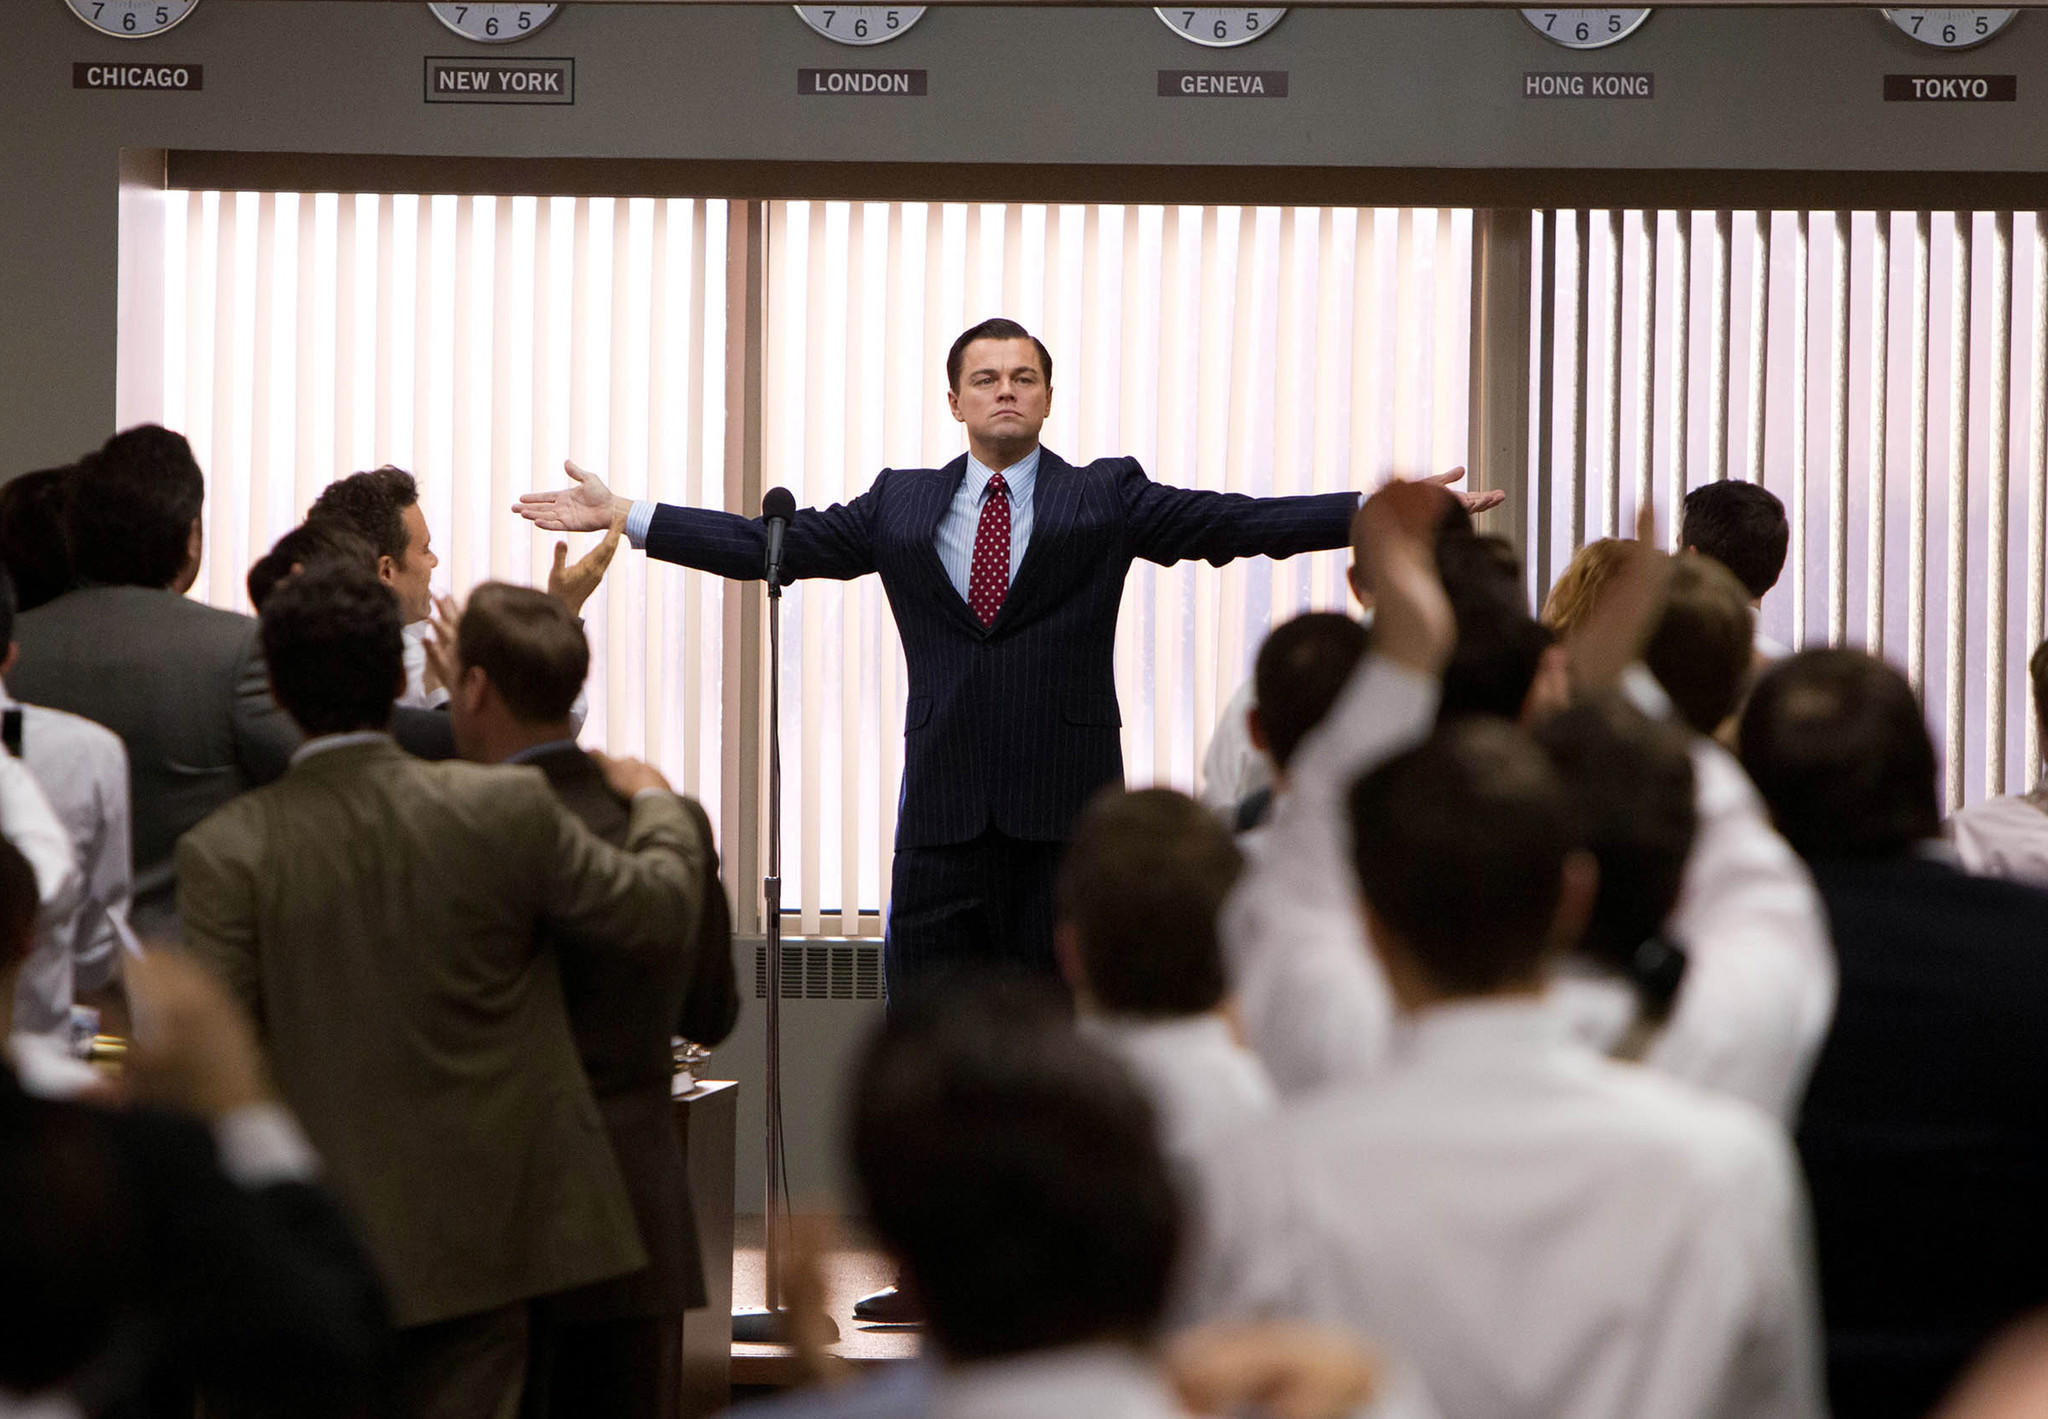 """Paramount's """"The Wolf of Wall Street"""" is the first major Hollywood movie to be distributed entirely in digital format -- without the use of film or film reels on which the industry has depended since it began."""